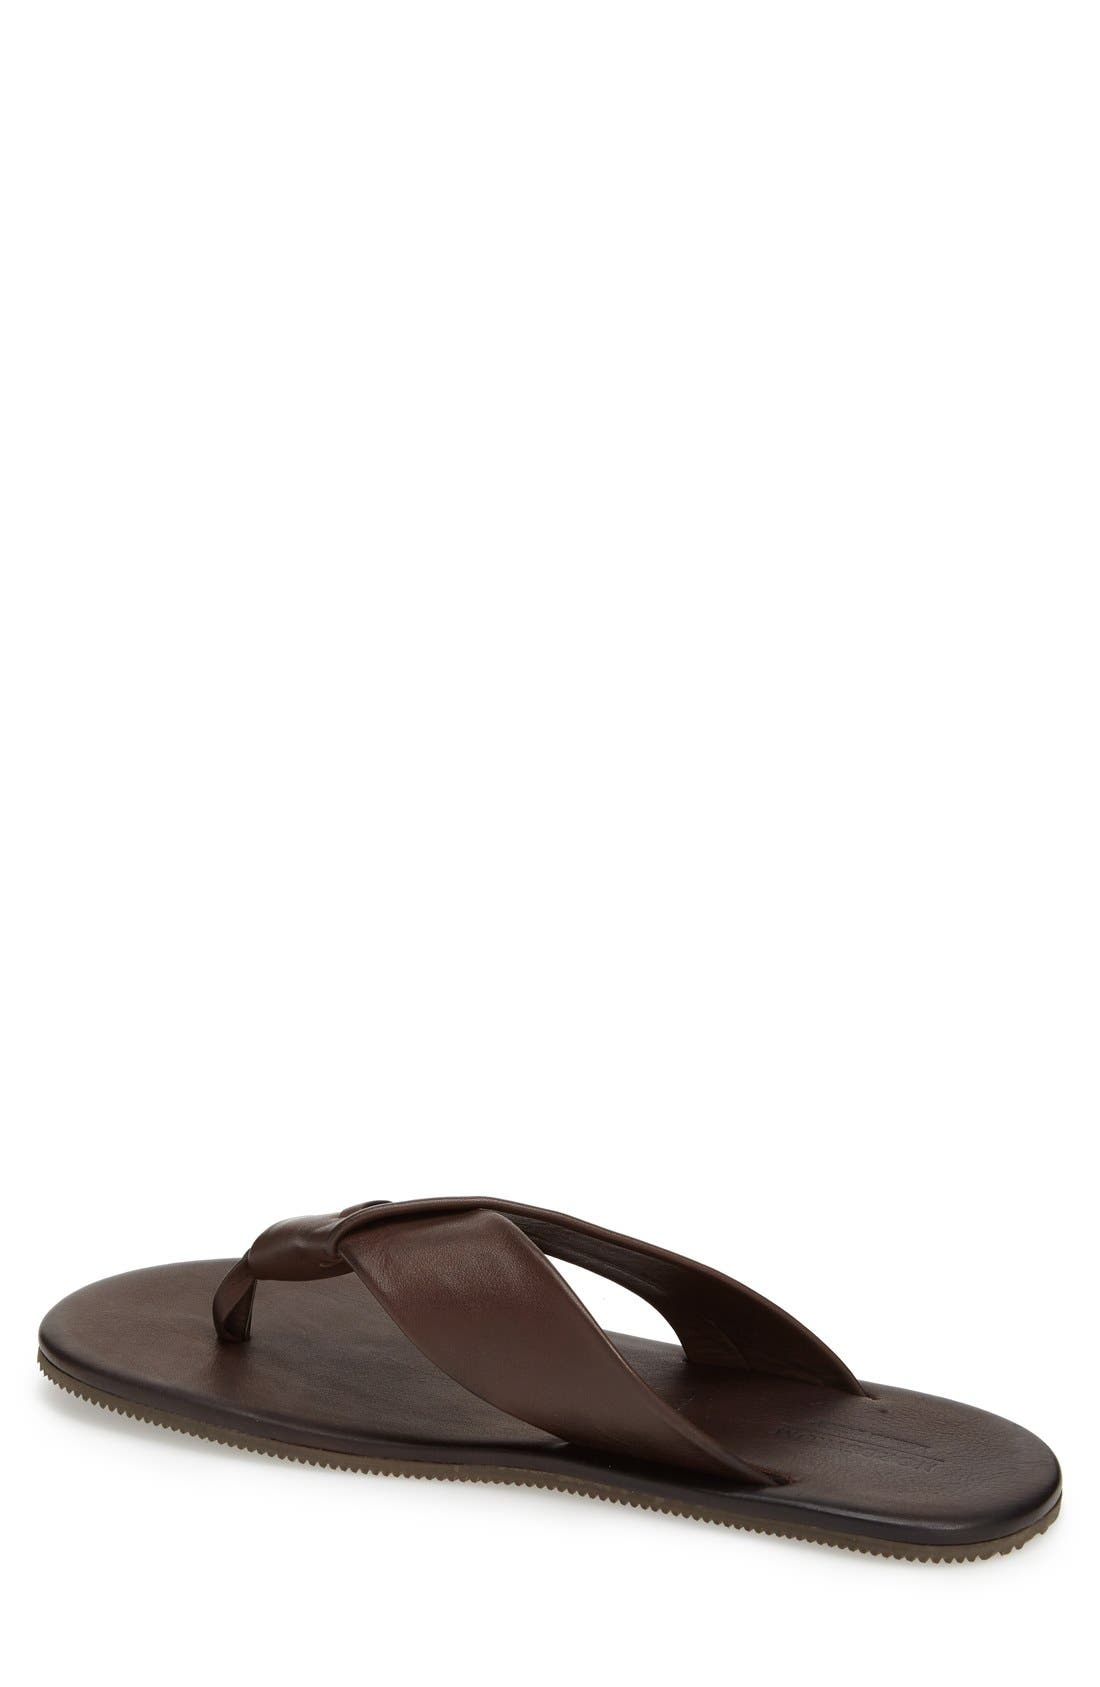 'Breeze' Flip Flop,                             Alternate thumbnail 2, color,                             Brown